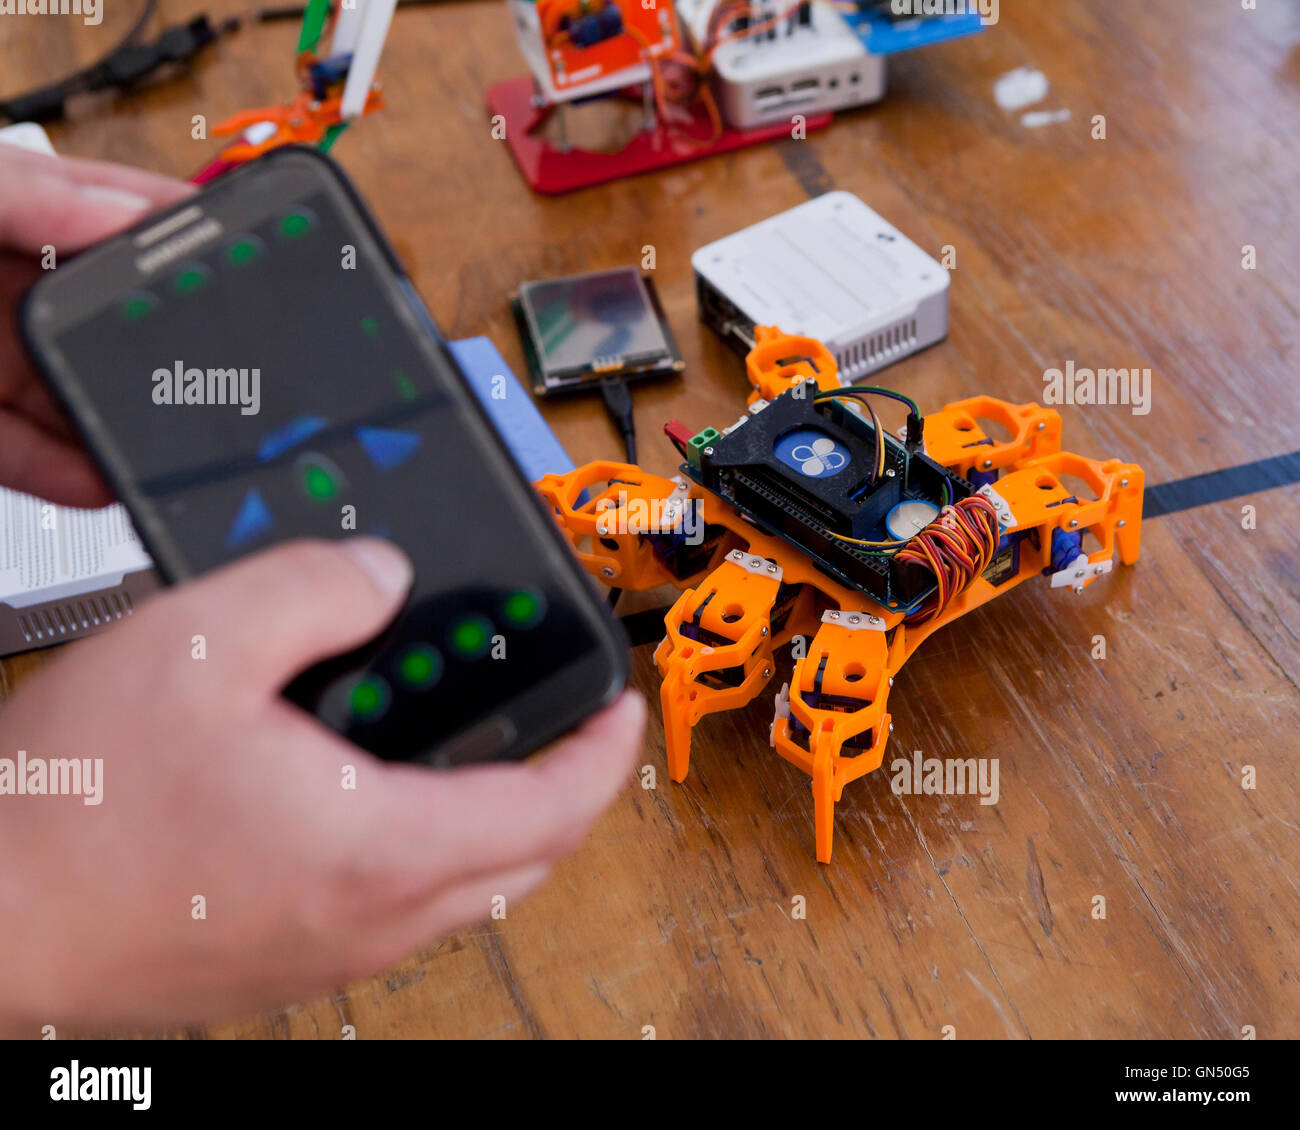 Man controlling toy robot with mobile phone ap via bluethooth - USA - Stock Image